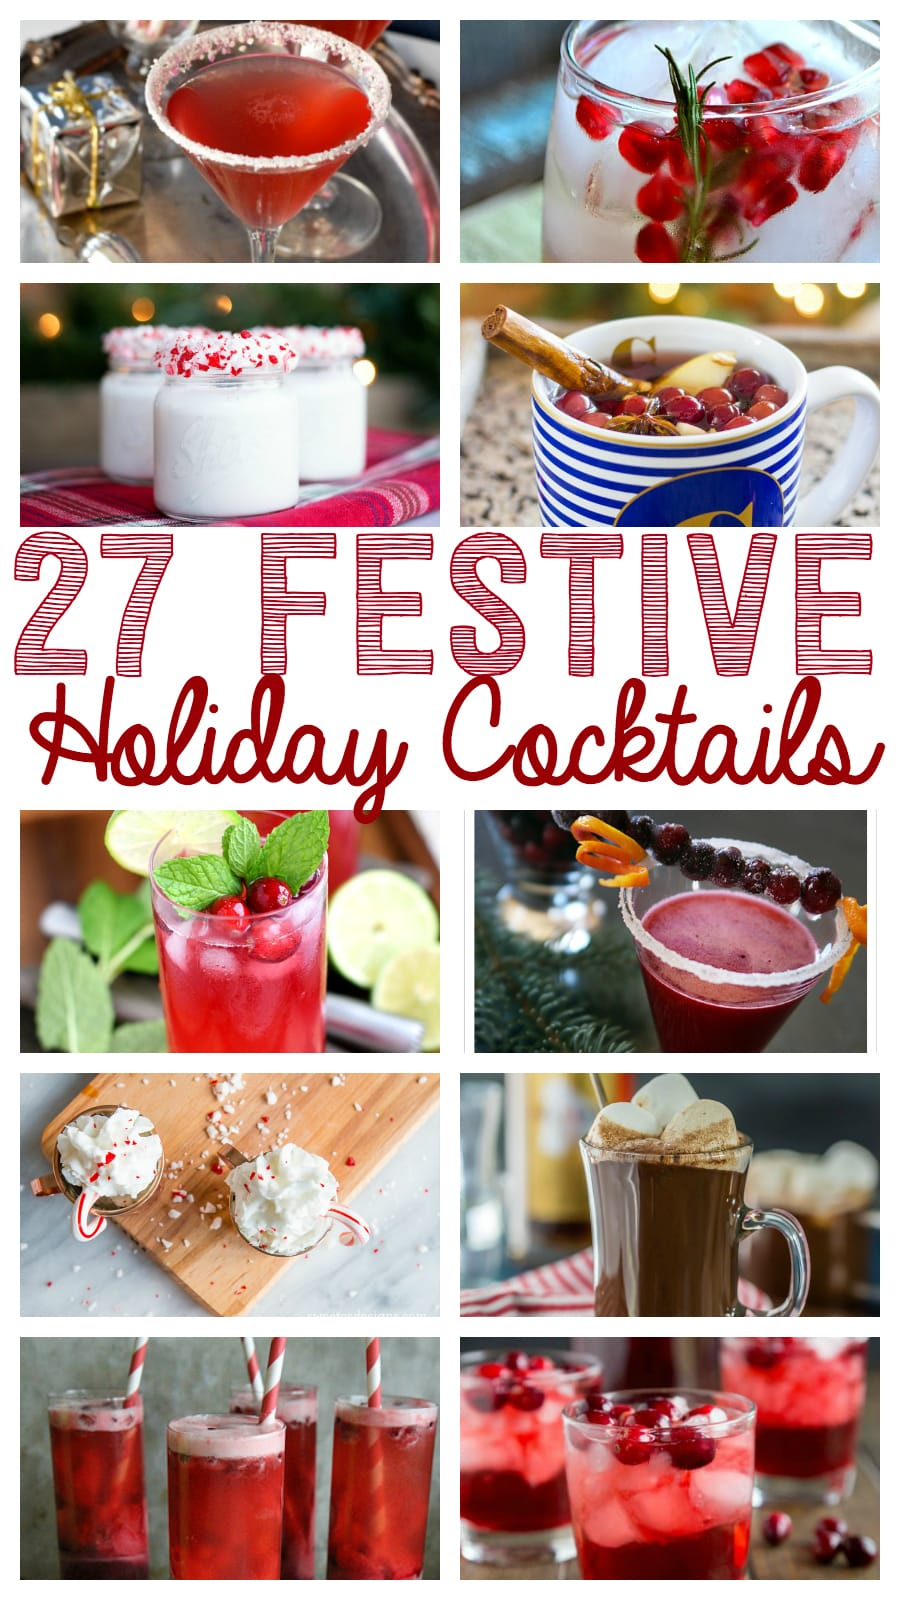 27 festive holiday cocktails